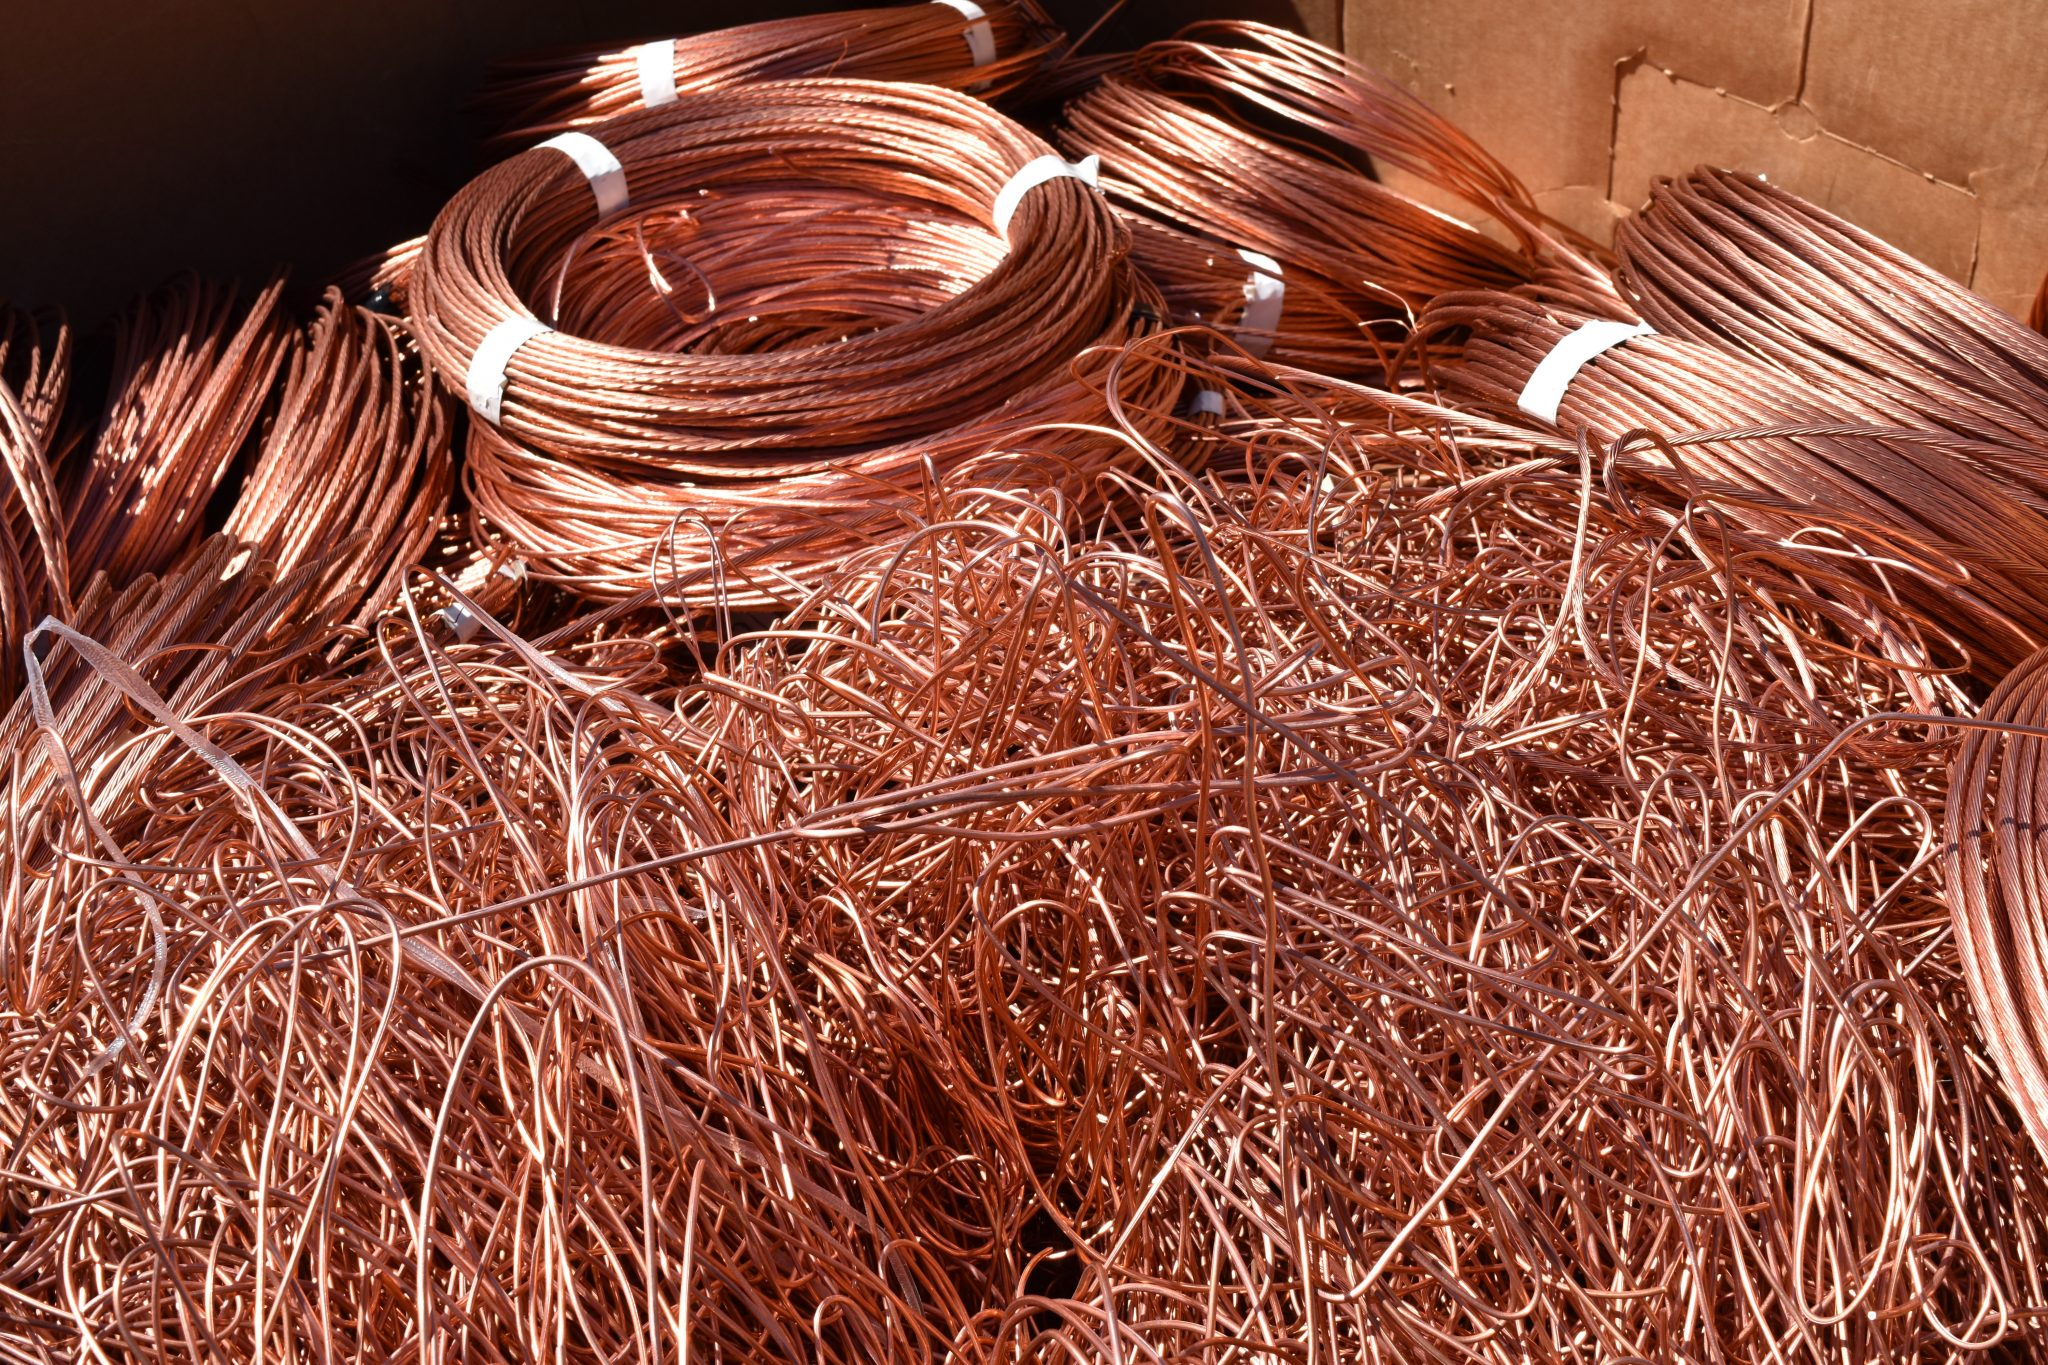 Scrap Prices Light Copper furthermore Copper Recycling Maryland Scrap Copper Recycling Owl Metals Inc Baltimore Md 410 282 0068 Essex Md Towson Md Dundalk Md Timonium Md Columbia Md Glen Burnie Md furthermore Services in addition Bright And Shiny Copper Wire as well How Much Is Scrap Copper Per Pound. on bare copper wire scrap prices